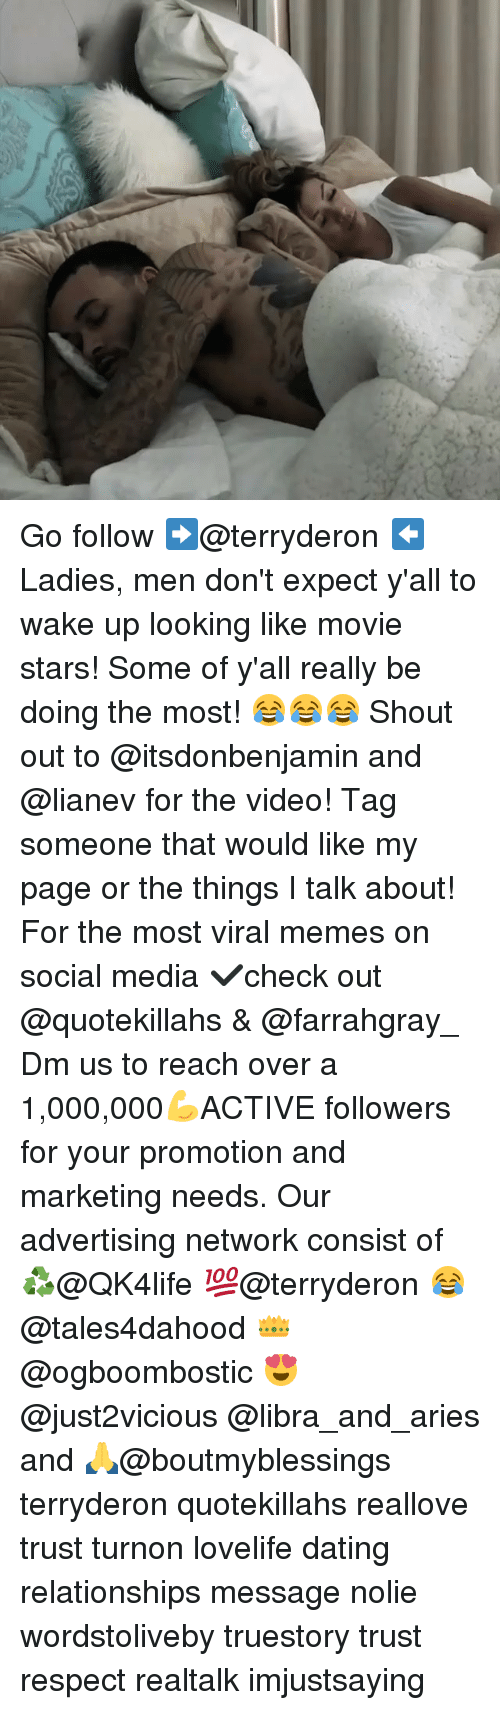 Memes, Relationships, and 🤖: Go follow ➡@terryderon ⬅️ Ladies, men don't expect y'all to wake up looking like movie stars! Some of y'all really be doing the most! 😂😂😂 Shout out to @itsdonbenjamin and @lianev for the video! Tag someone that would like my page or the things I talk about! For the most viral memes on social media ✔check out @quotekillahs & @farrahgray_ Dm us to reach over a 1,000,000💪ACTIVE followers for your promotion and marketing needs. Our advertising network consist of ♻@QK4life 💯@terryderon 😂@tales4dahood 👑@ogboombostic 😍@just2vicious @libra_and_aries and 🙏@boutmyblessings terryderon quotekillahs reallove trust turnon lovelife dating relationships message nolie wordstoliveby truestory trust respect realtalk imjustsaying